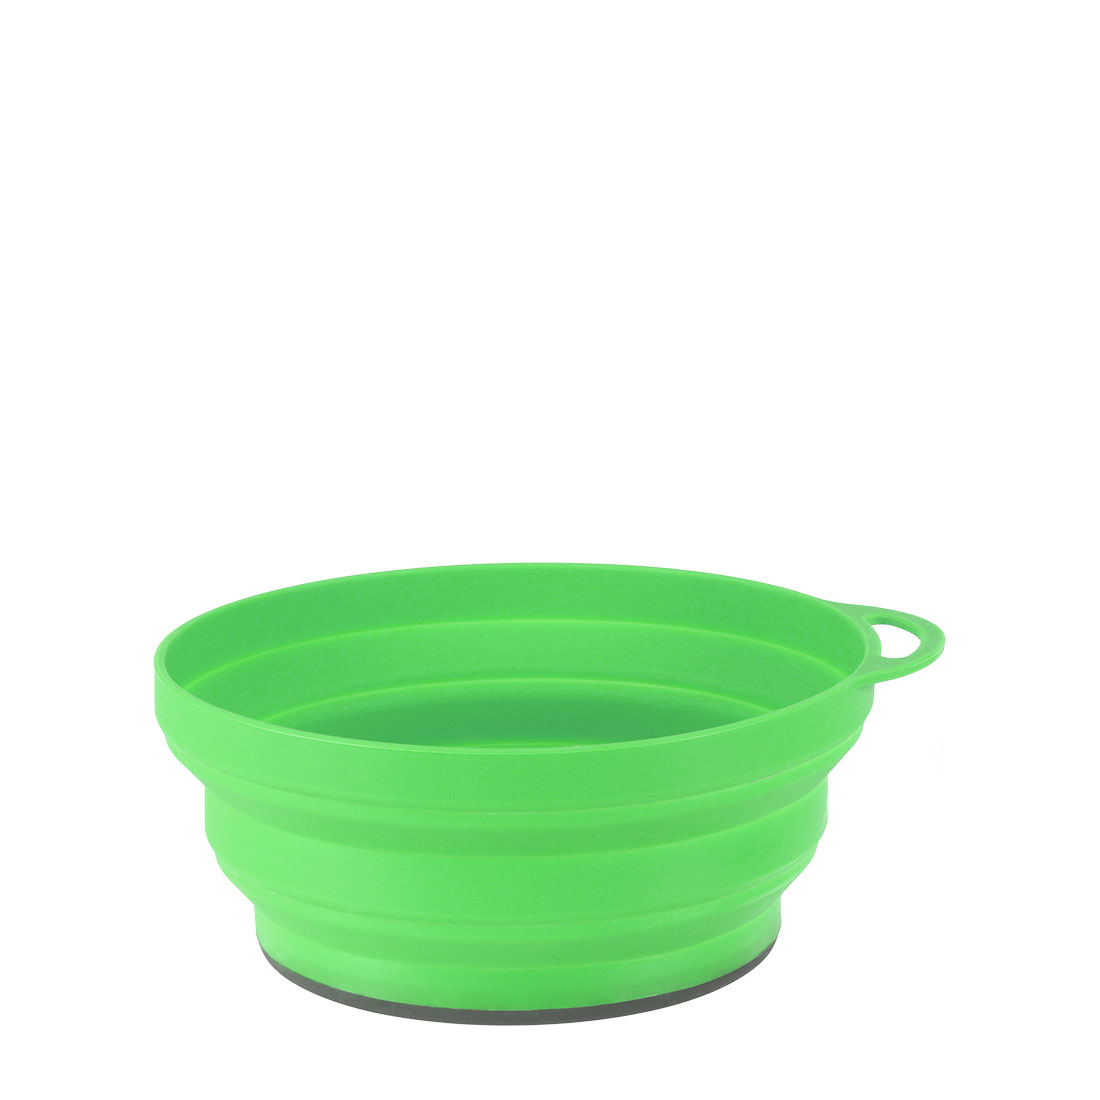 Ellipse Collapsible Bowls (green)